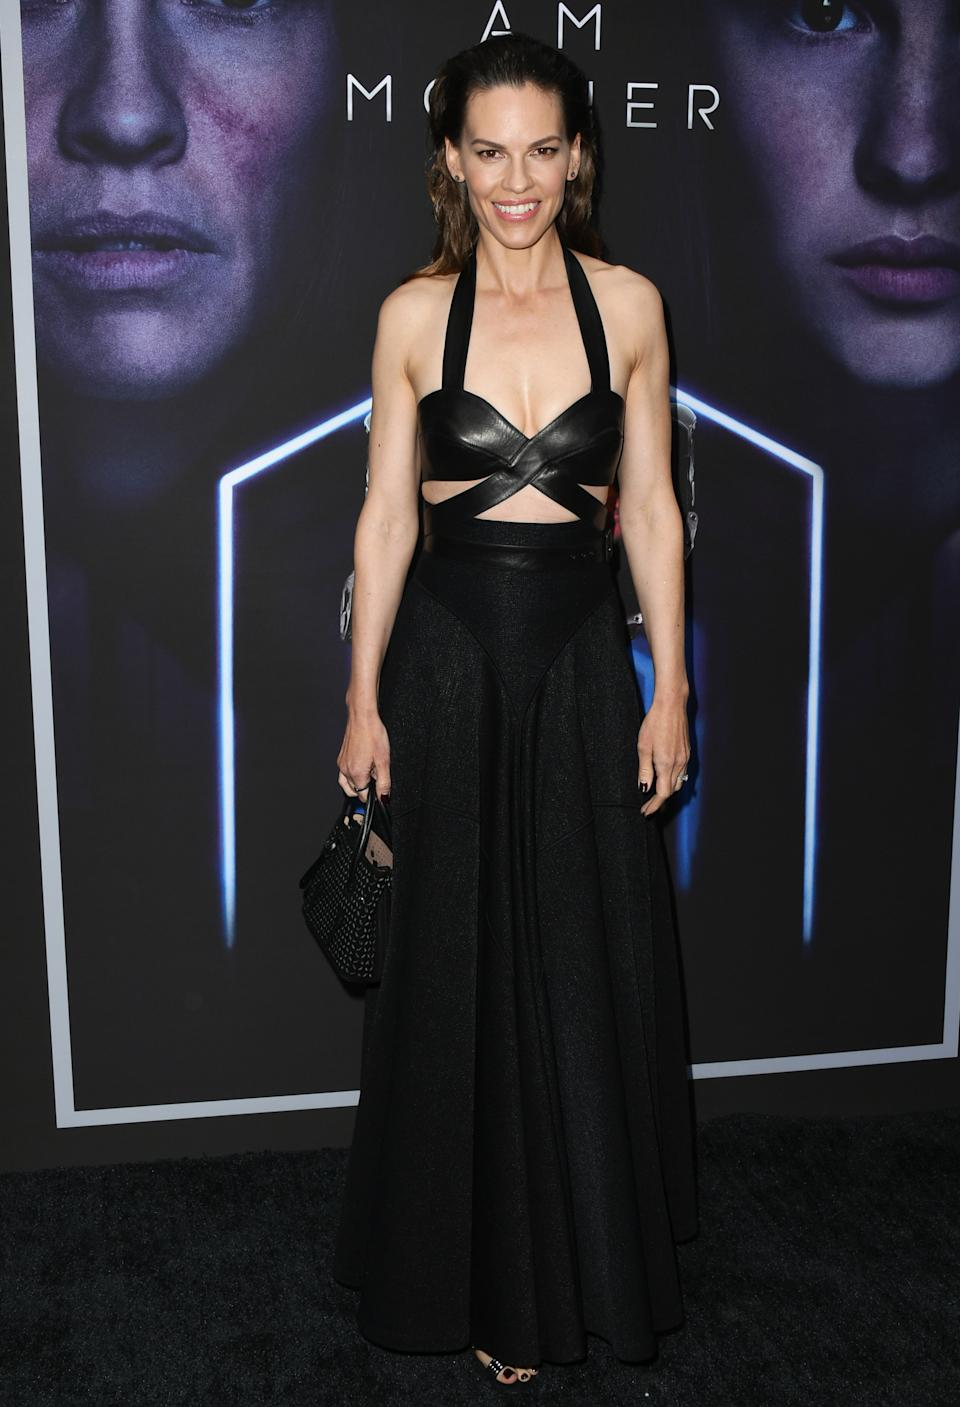 On June 6, the actress made a red carpet comeback in a cut-out ensemble with slicked back hair to finish. <em>[Photo: Getty]</em>